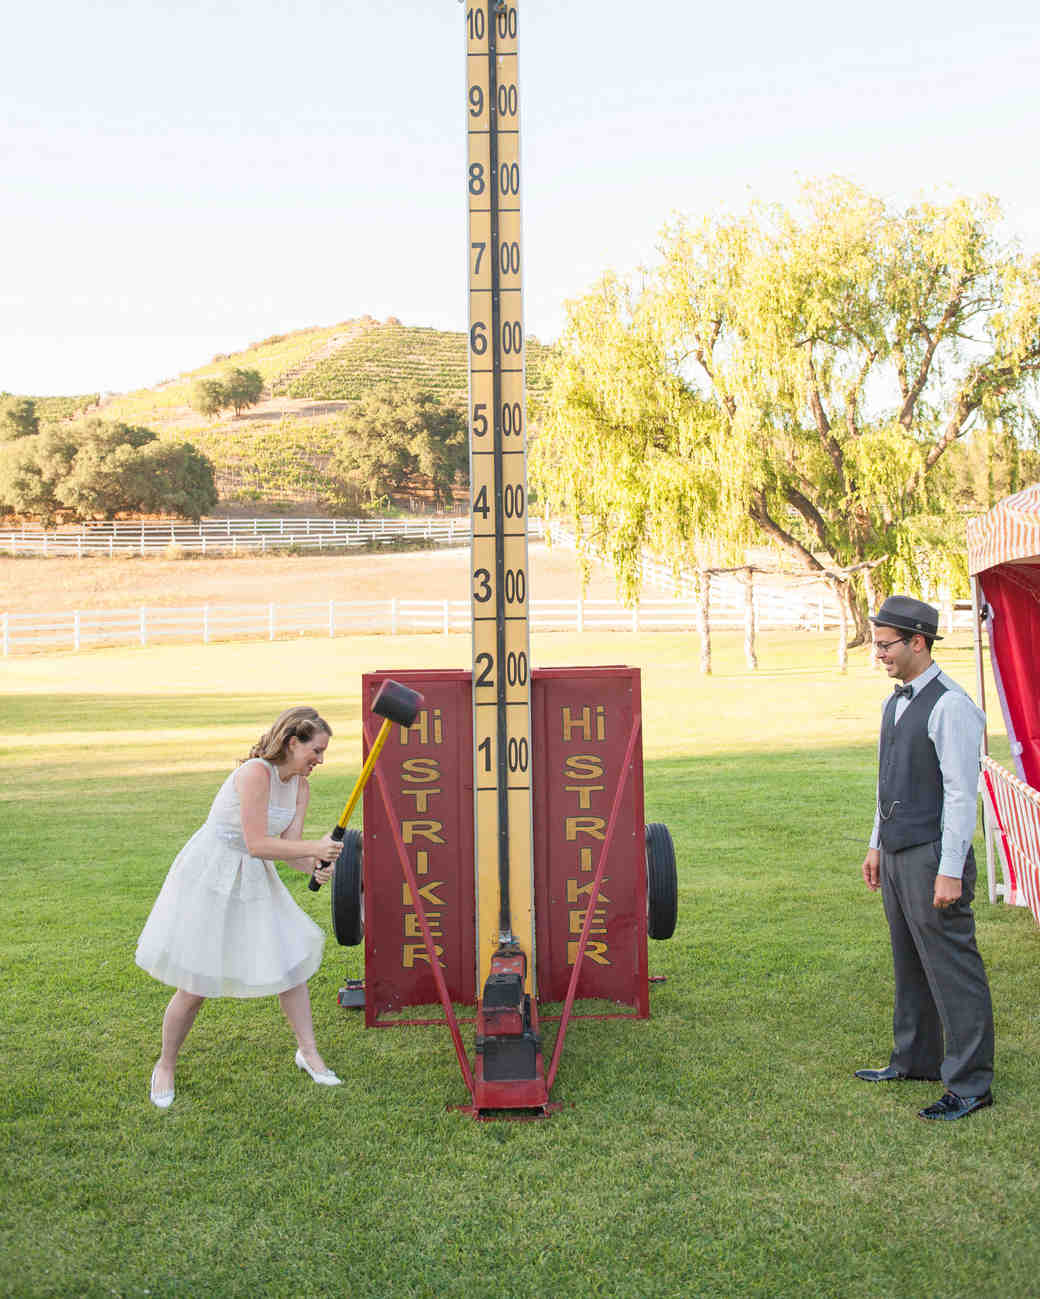 Games To Play At Wedding Reception: Fun Wedding Games That'll Keep Guests Laughing